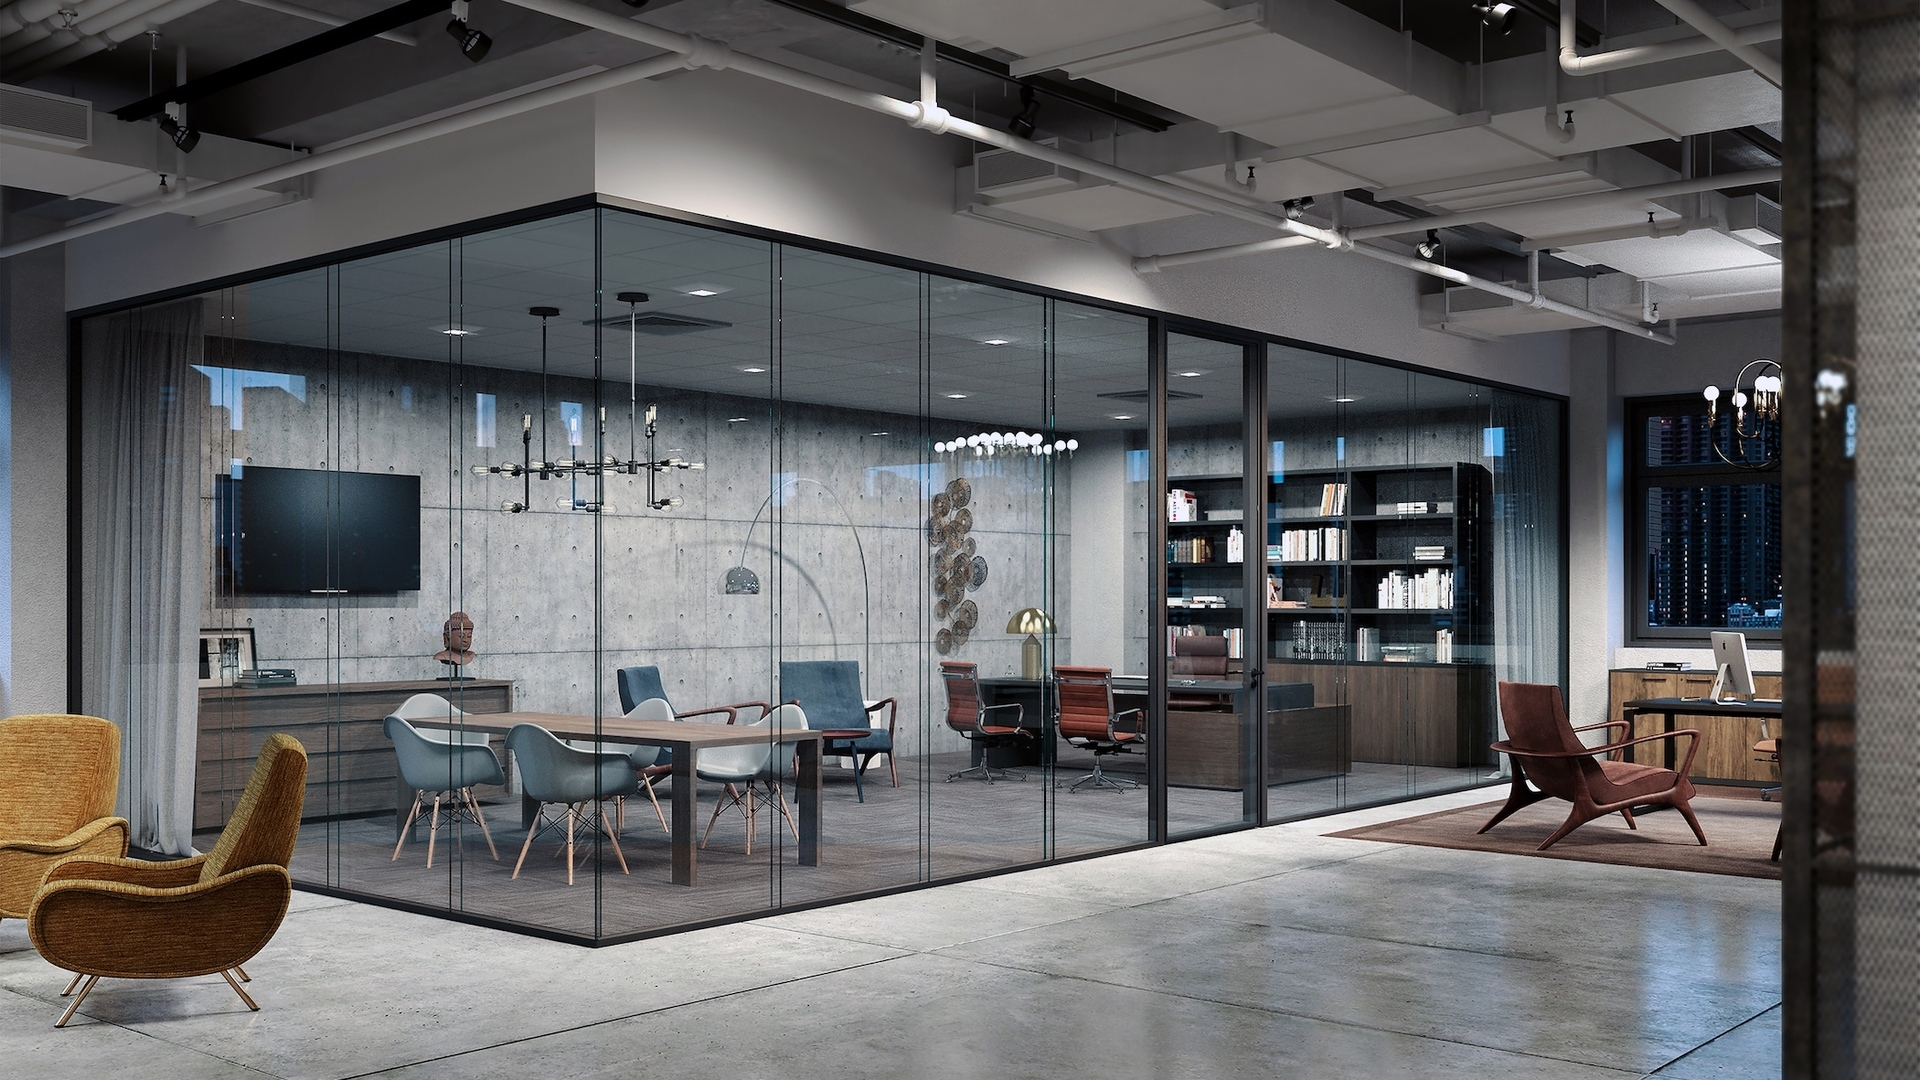 Up your interior office space with Lama glass systems by Modernus.